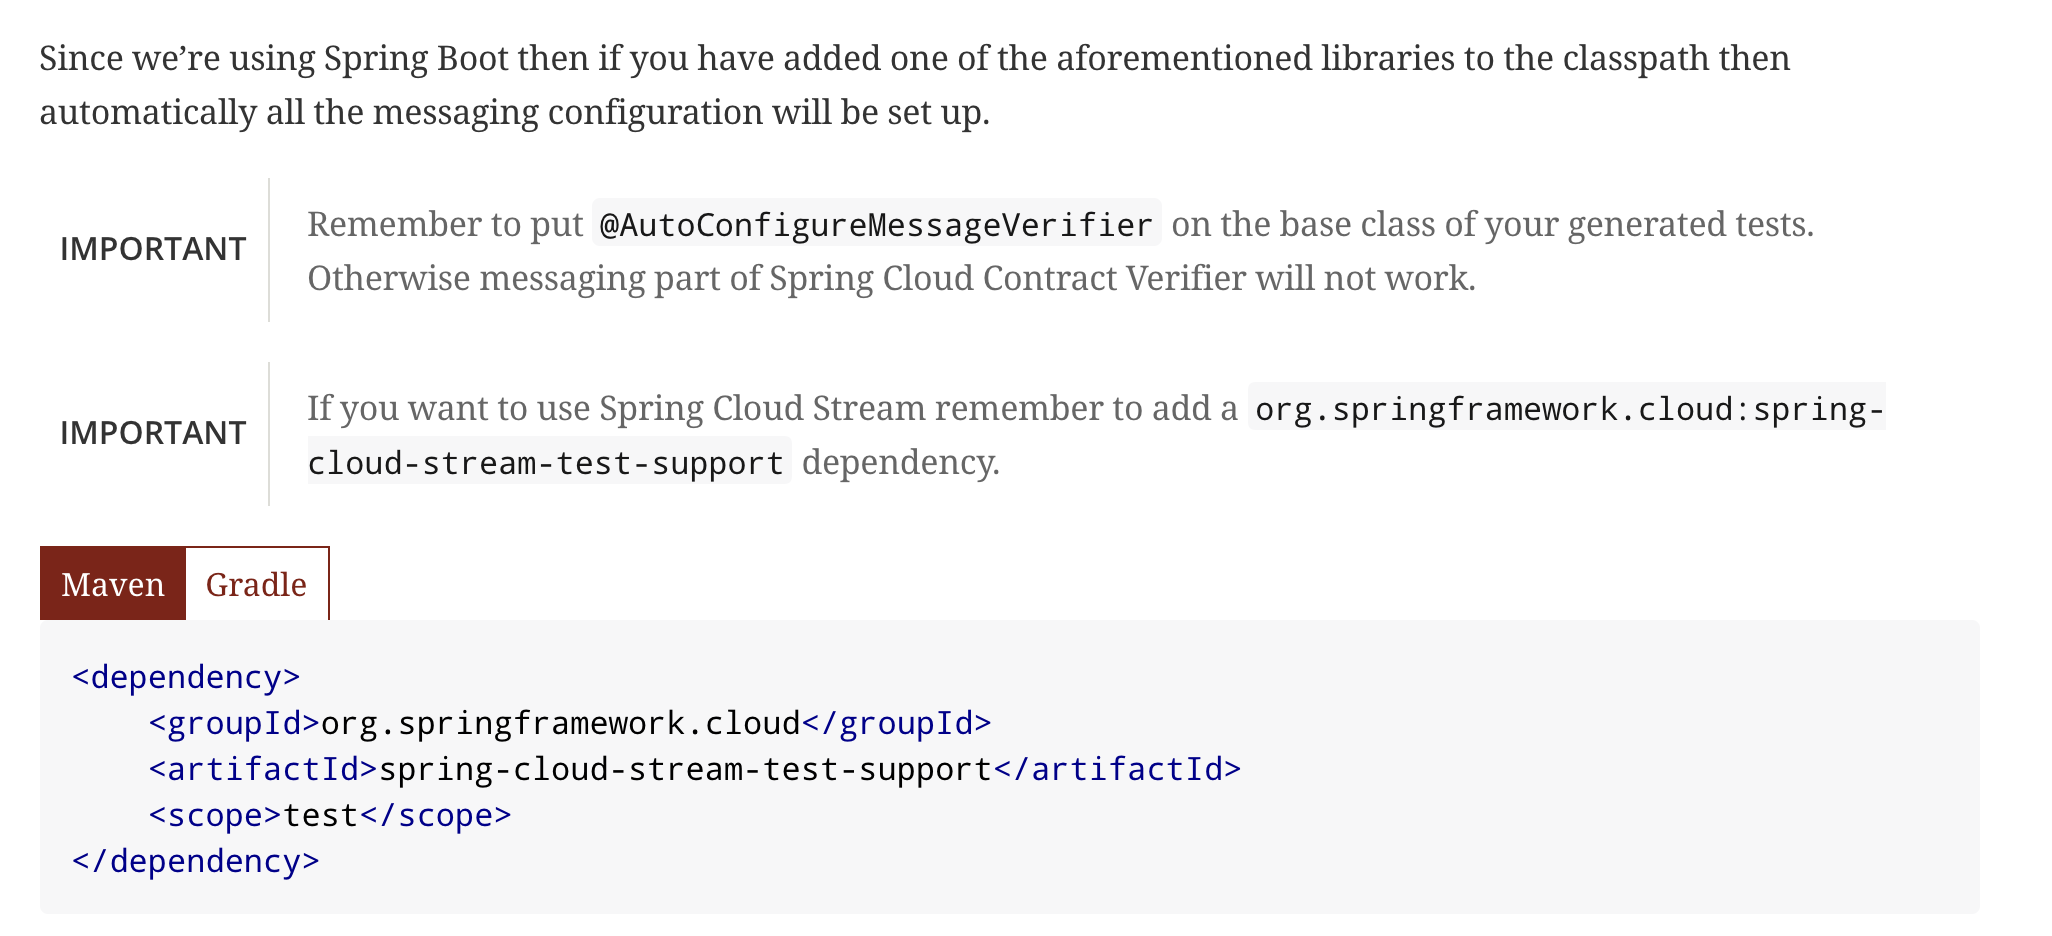 spring-cloud/spring-cloud-contract - Gitter